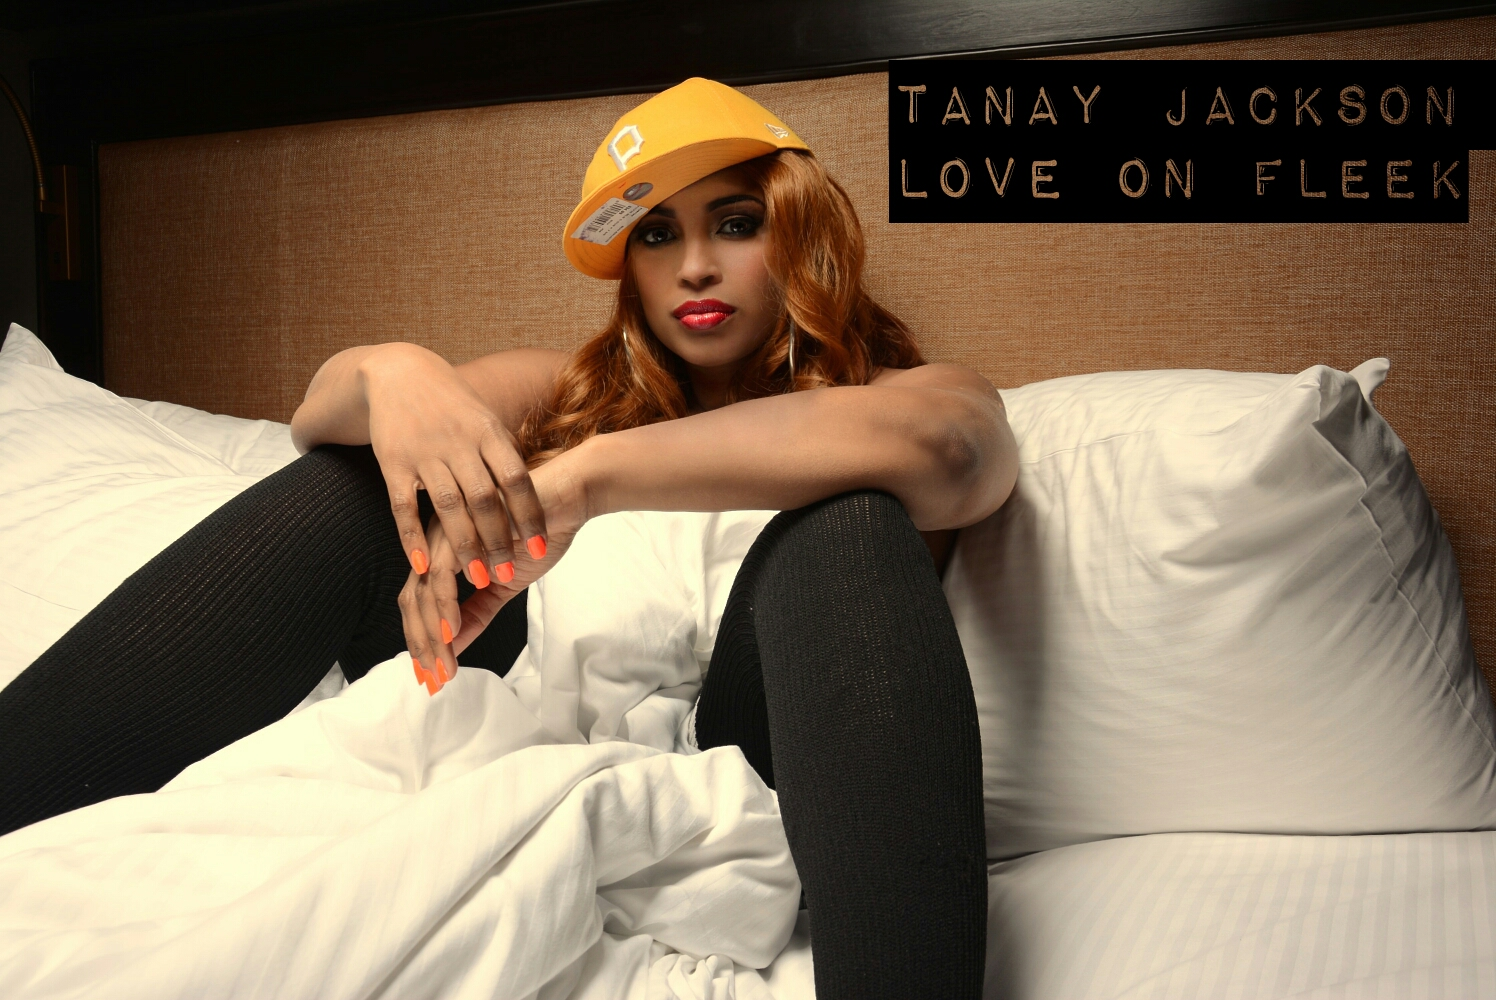 TANAY JACKSON Love On Fleek cover